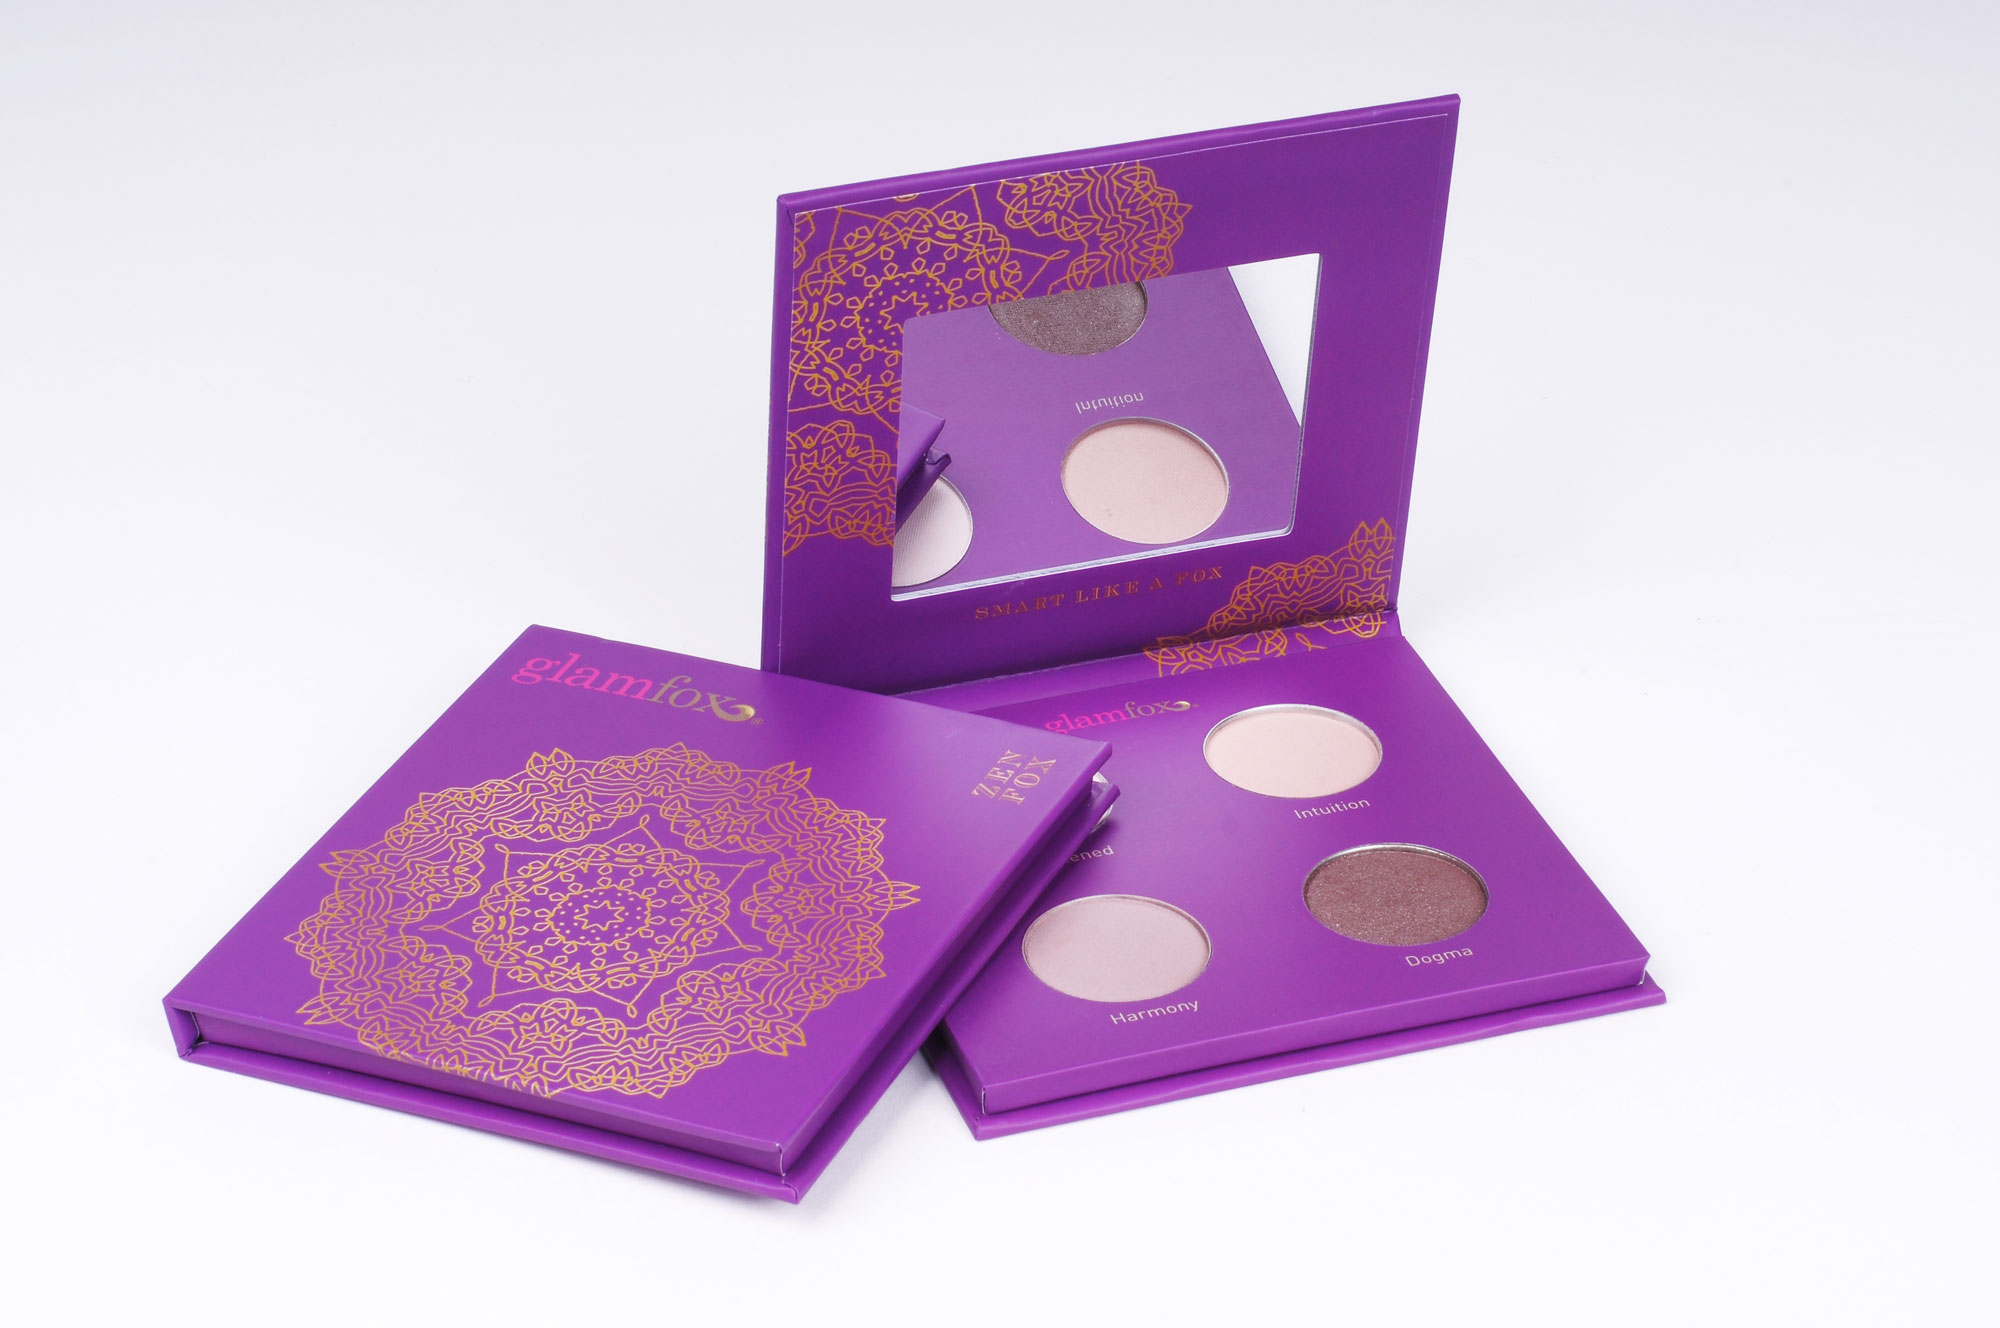 Glamfox: The Zen Fox palette features a unique madala design to set the mood and create a zen state-of-mind.